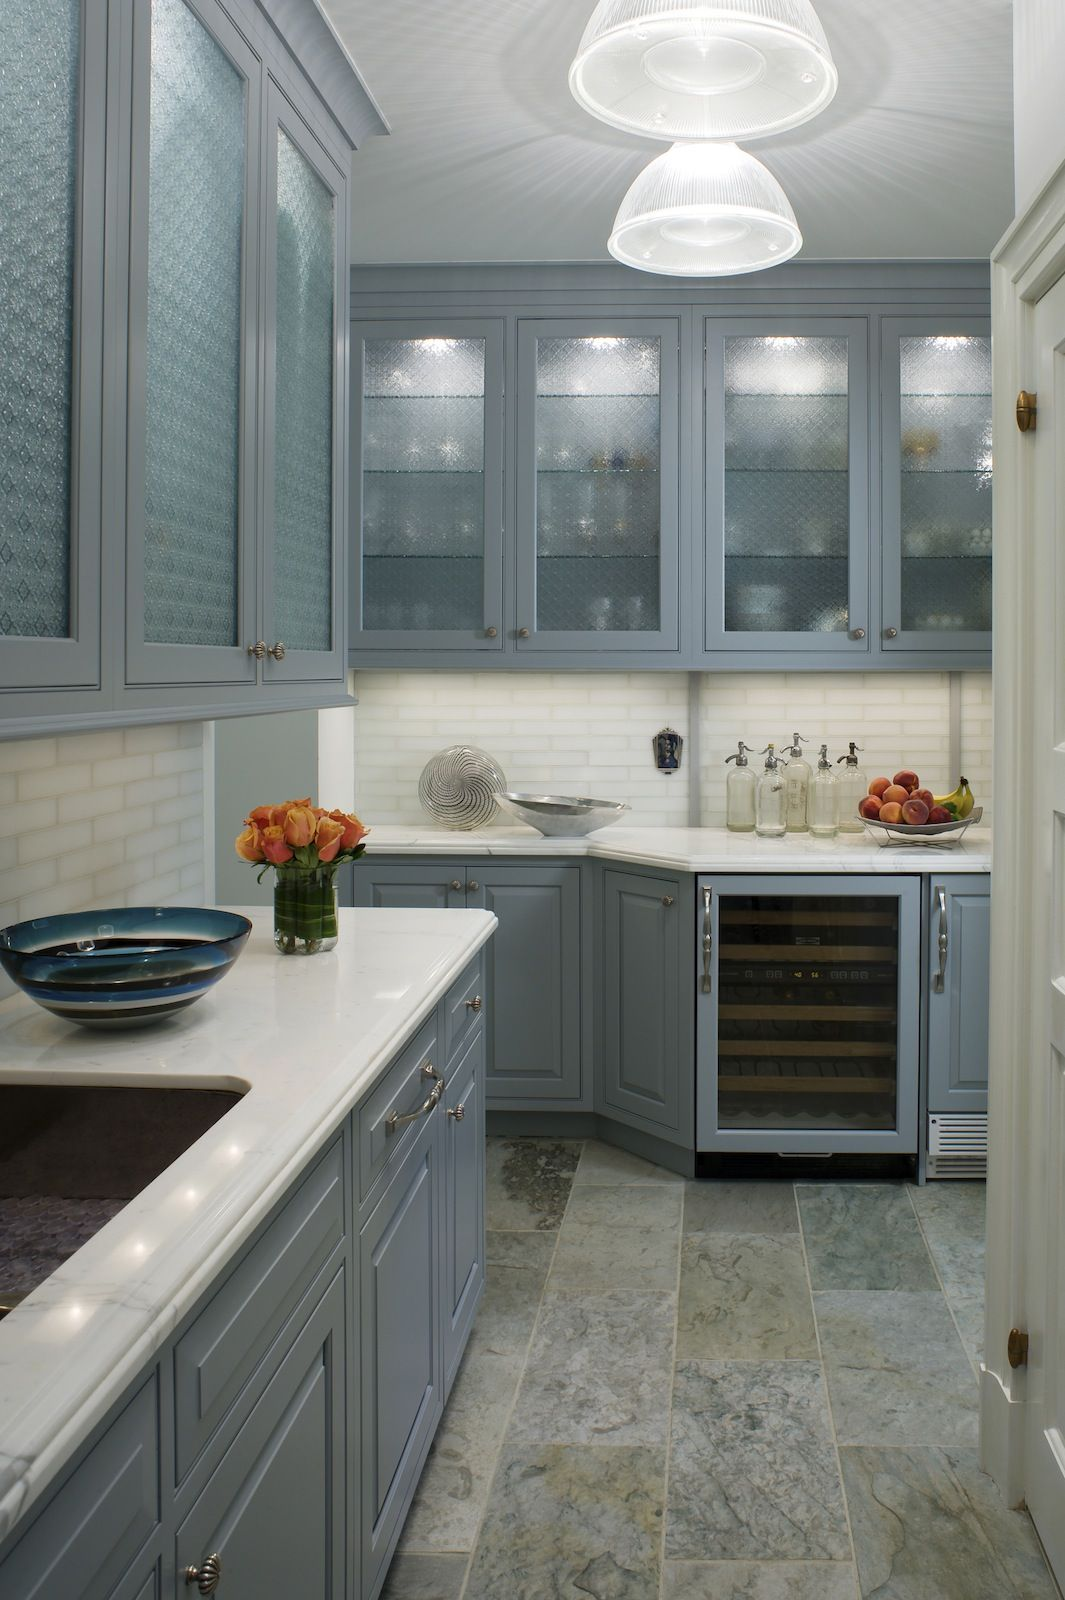 Blue Tile Backsplash Kitchen Butcher Block Countertops Image The Possibilities In This Beautiful